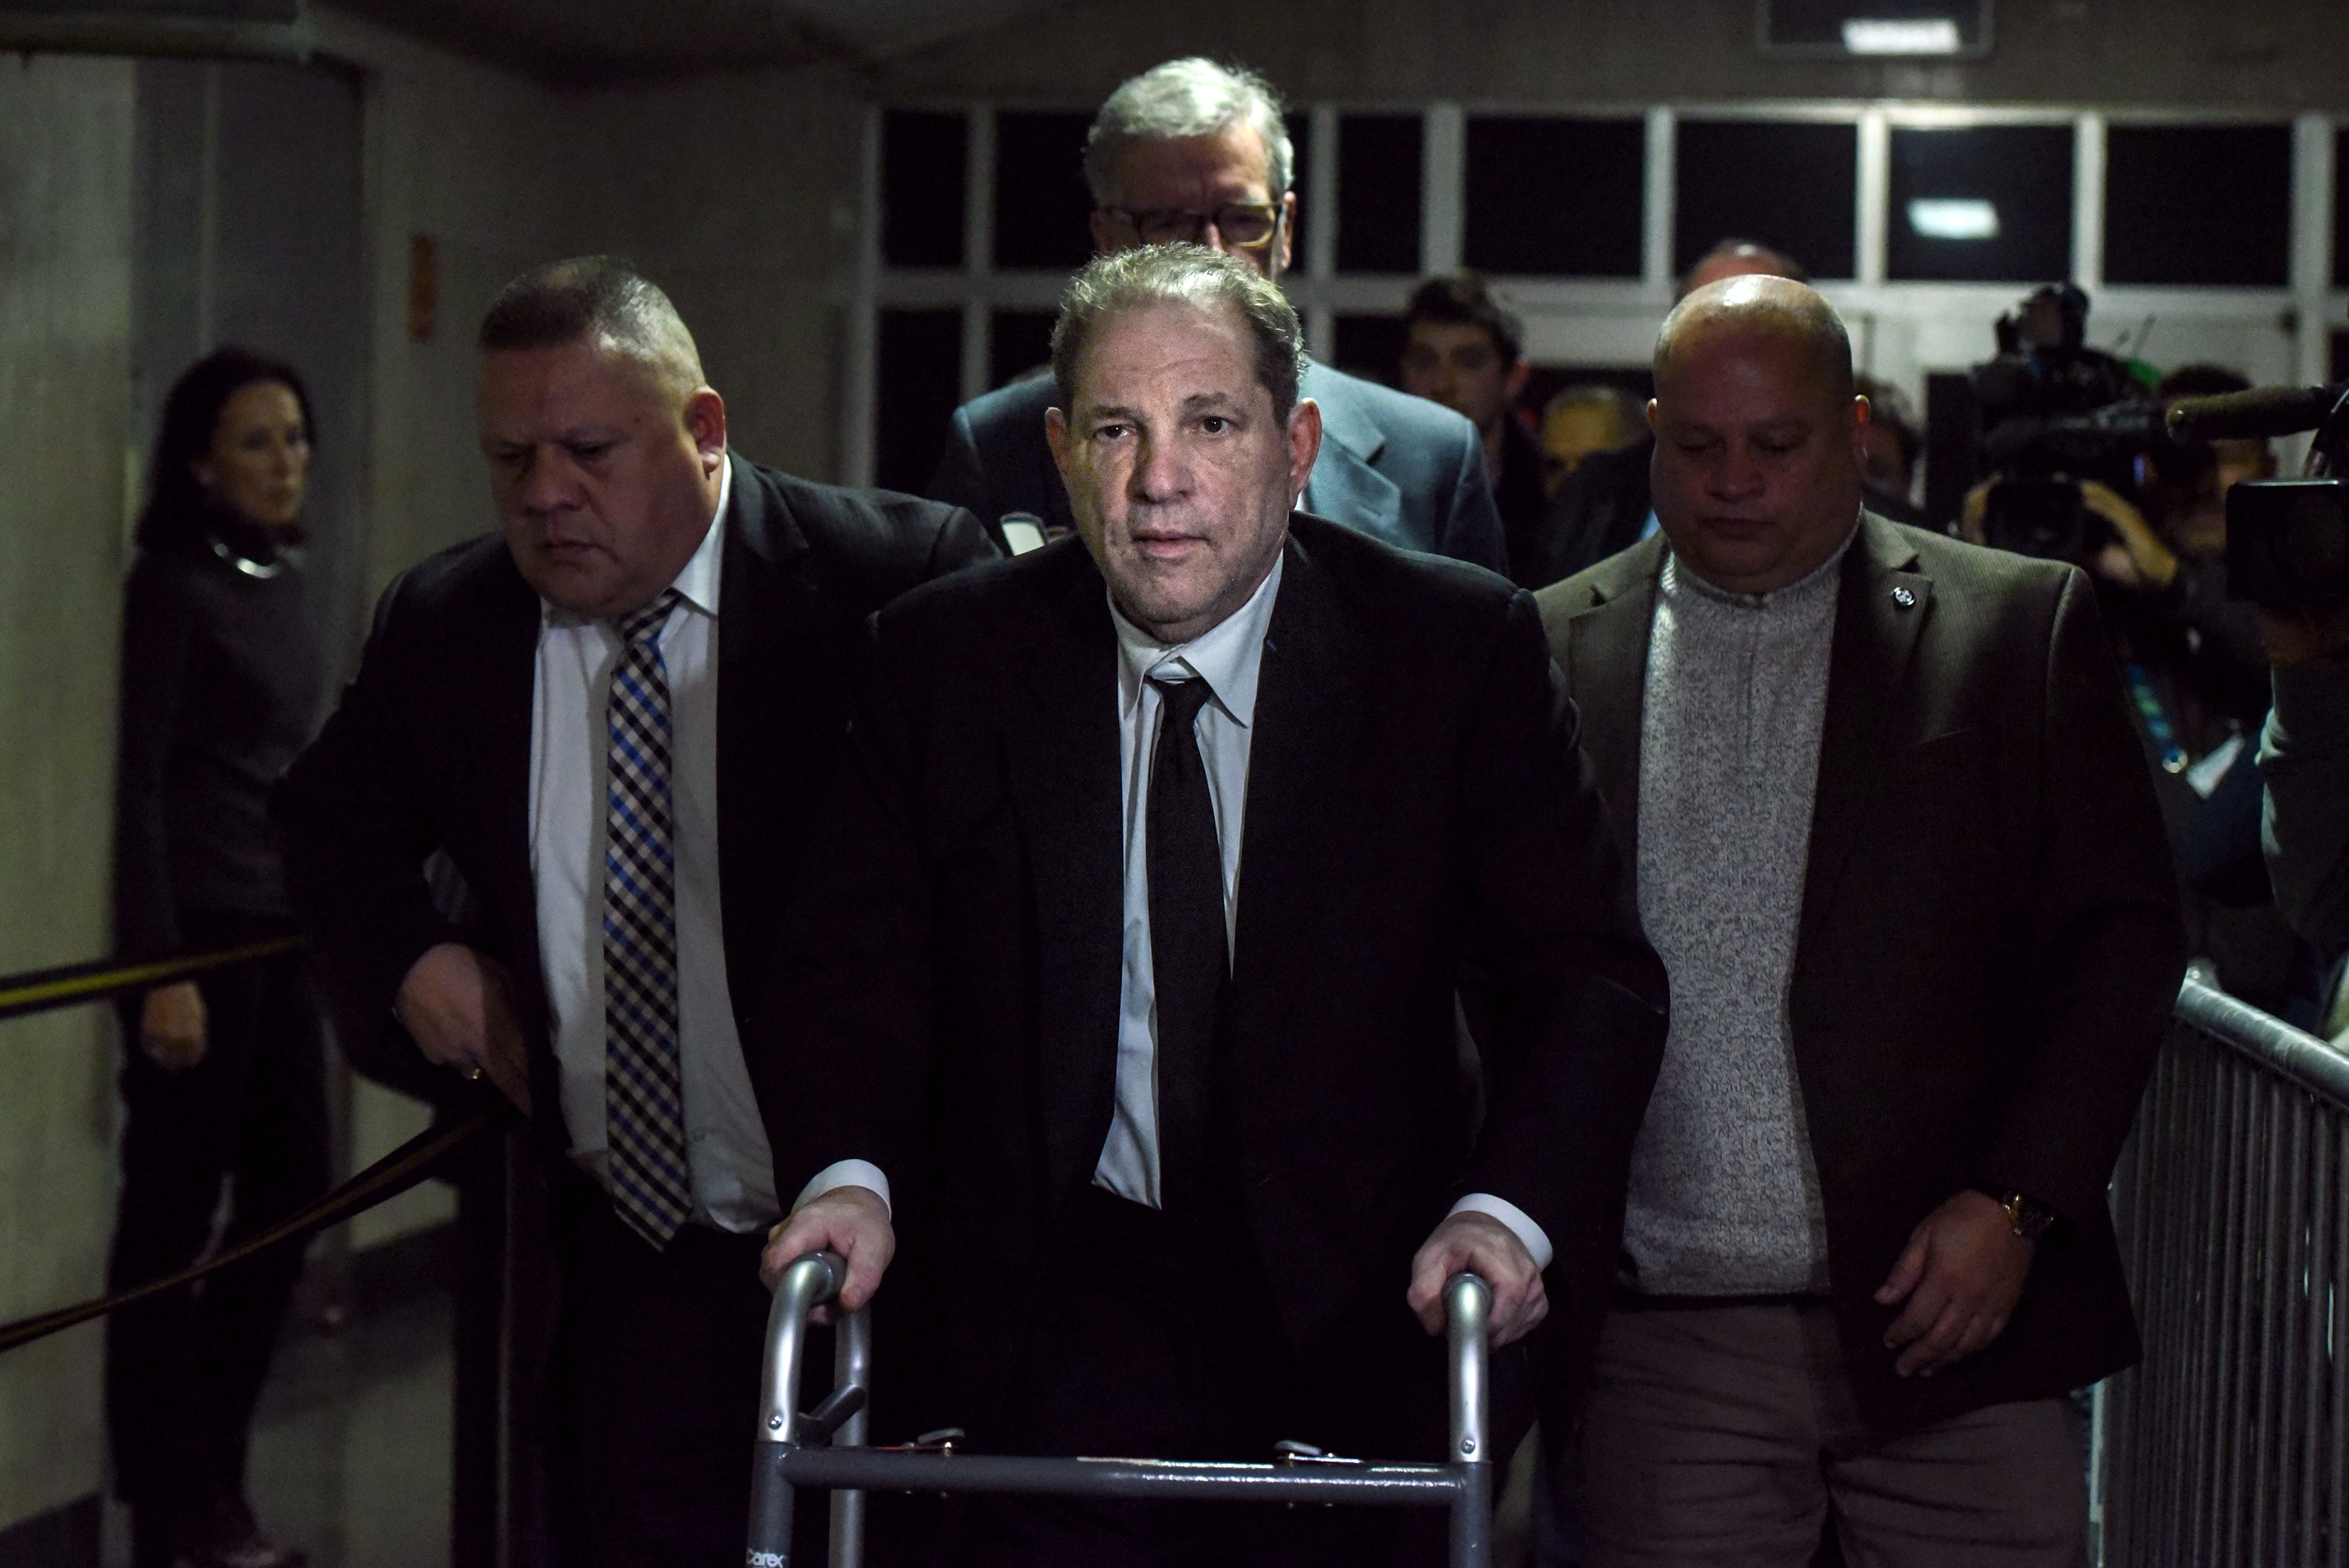 Harvey Weinstein leaves the courtroom in New York City criminal court on January 6, 2020 in New York City. Weinstein, a movie producer whose alleged sexual misconduct helped spark the #MeToo movement, pleaded not-guilty on five counts of rape and sexual assault against two unnamed women and faces a possible life sentence in prison. (Photo by Stephanie Keith/Getty Images)